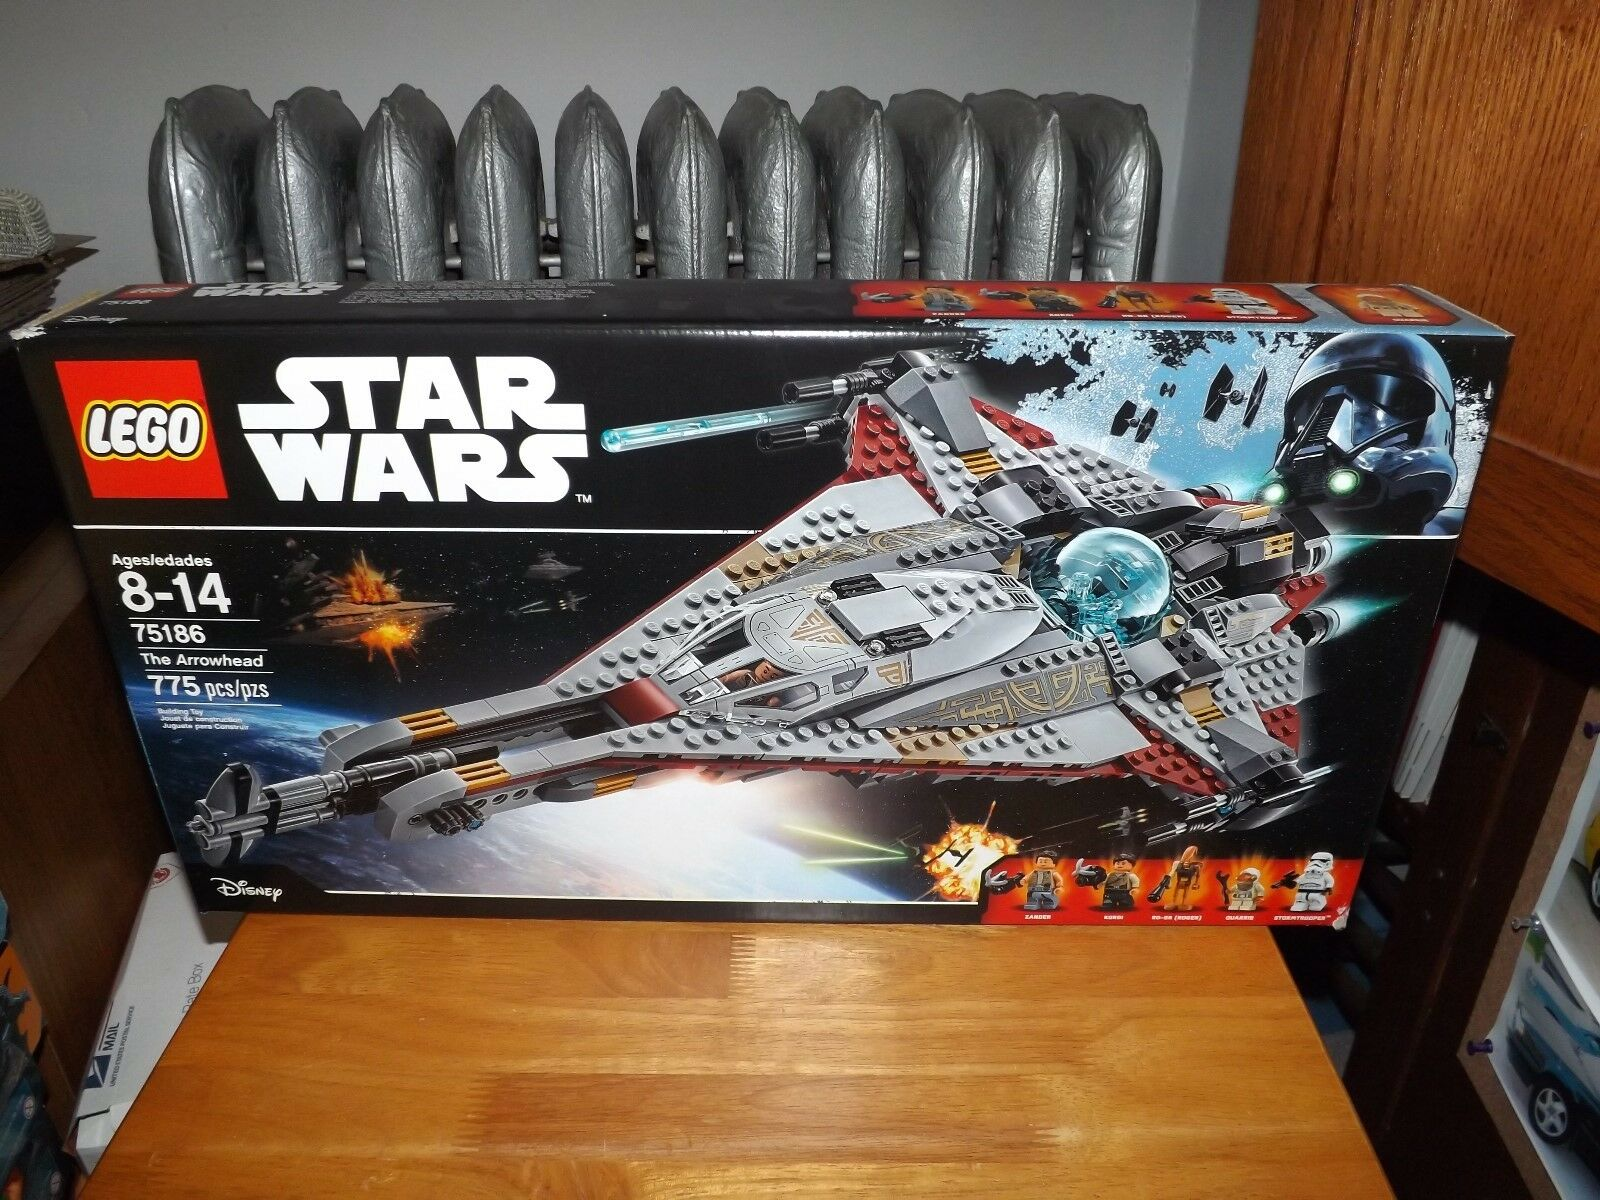 LEGO, STAR WARS, THE ARROWHEAD, KIT  75186, 775 PIECES, NEW IN BOX, 2017